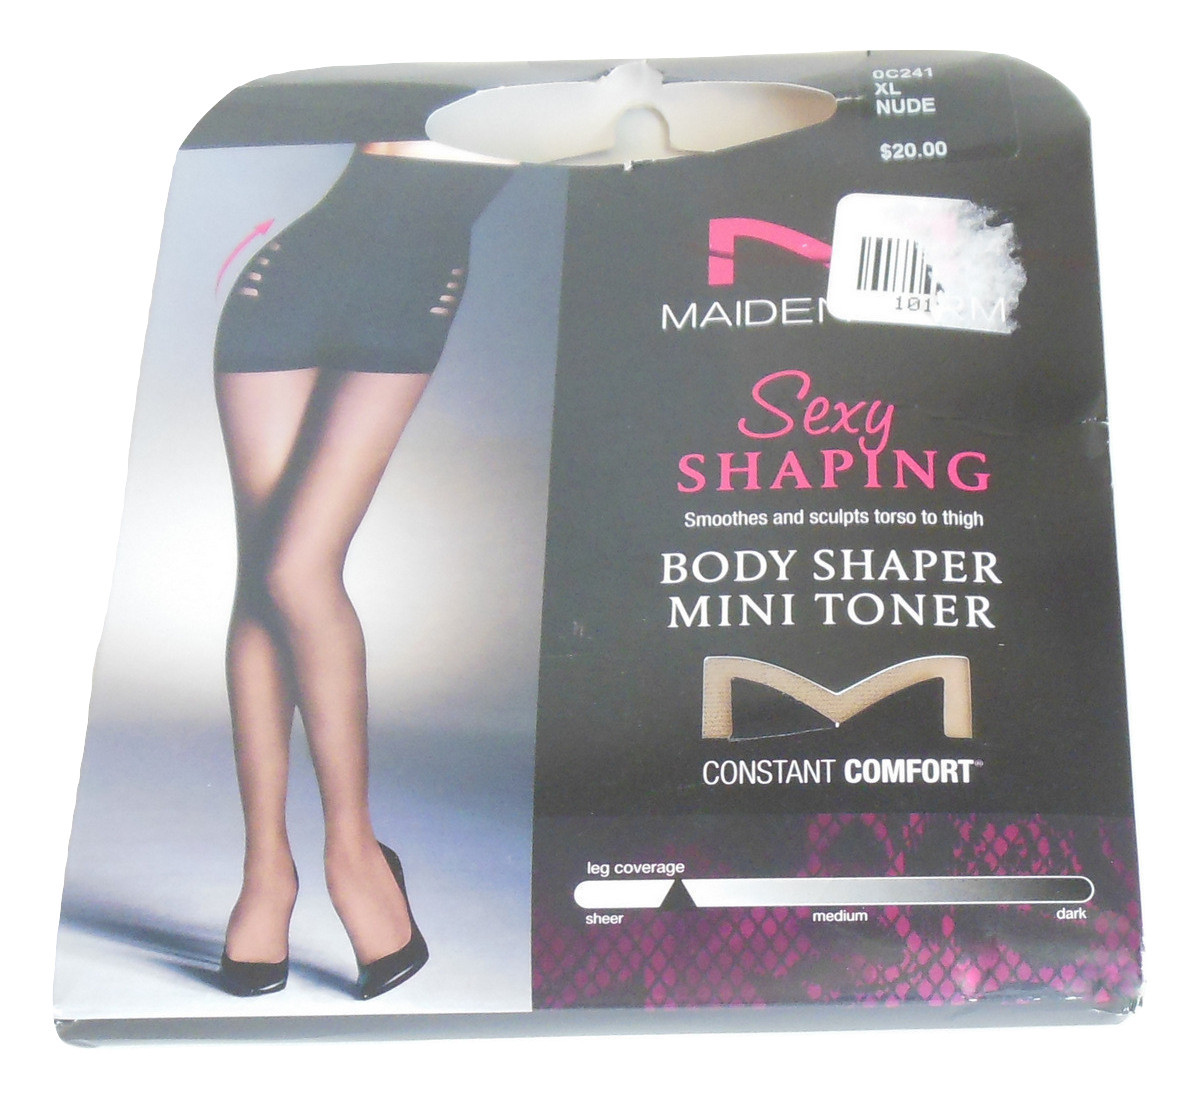 Maidenform Body Shaper Pantyhose Sz XL Nude 20 Denier Silky Sheer Leg Coverage